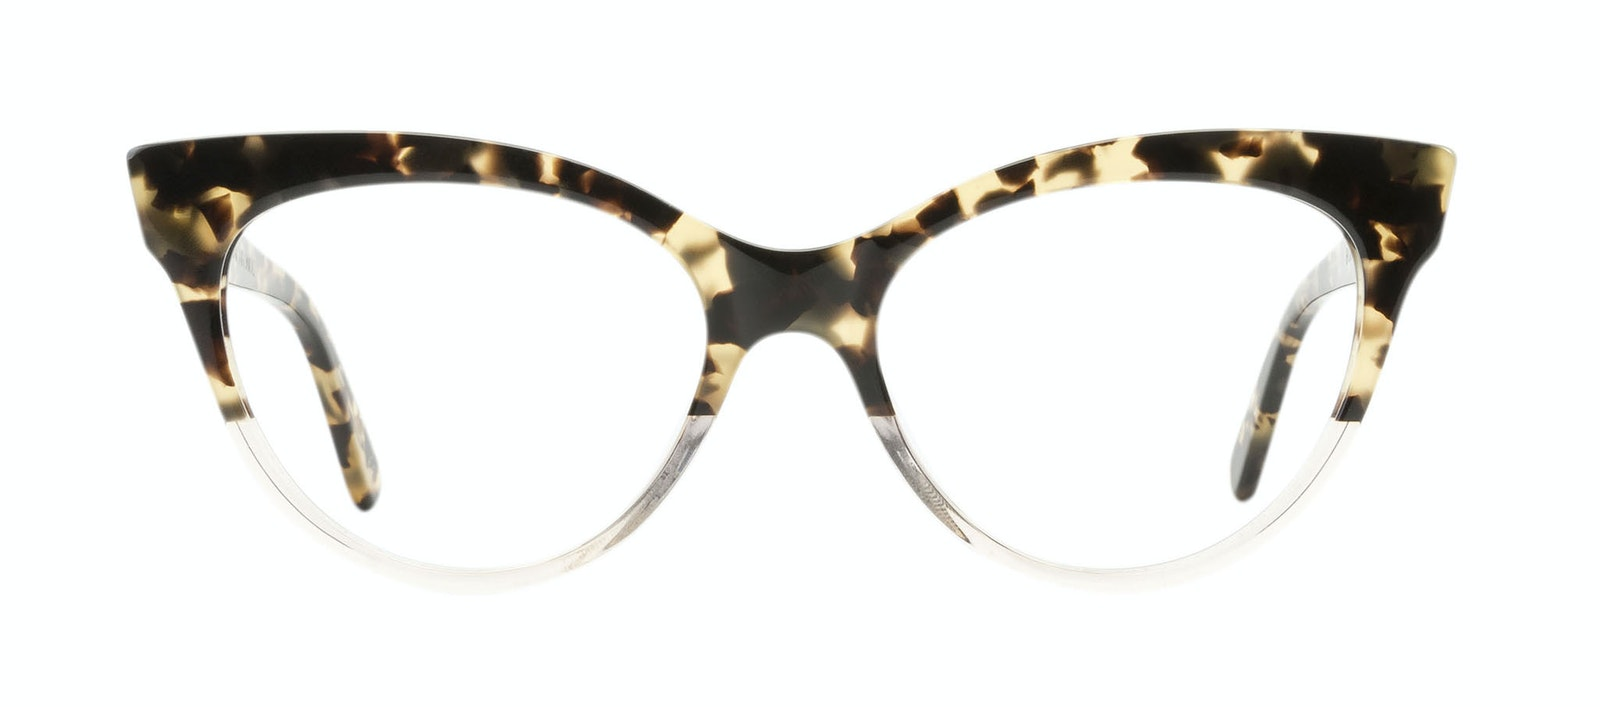 e121296a81ff6 ... Affordable Fashion Glasses Cat Eye Daring Cateye Eyeglasses Women  SkunkBoy Champagne Tort Front ...